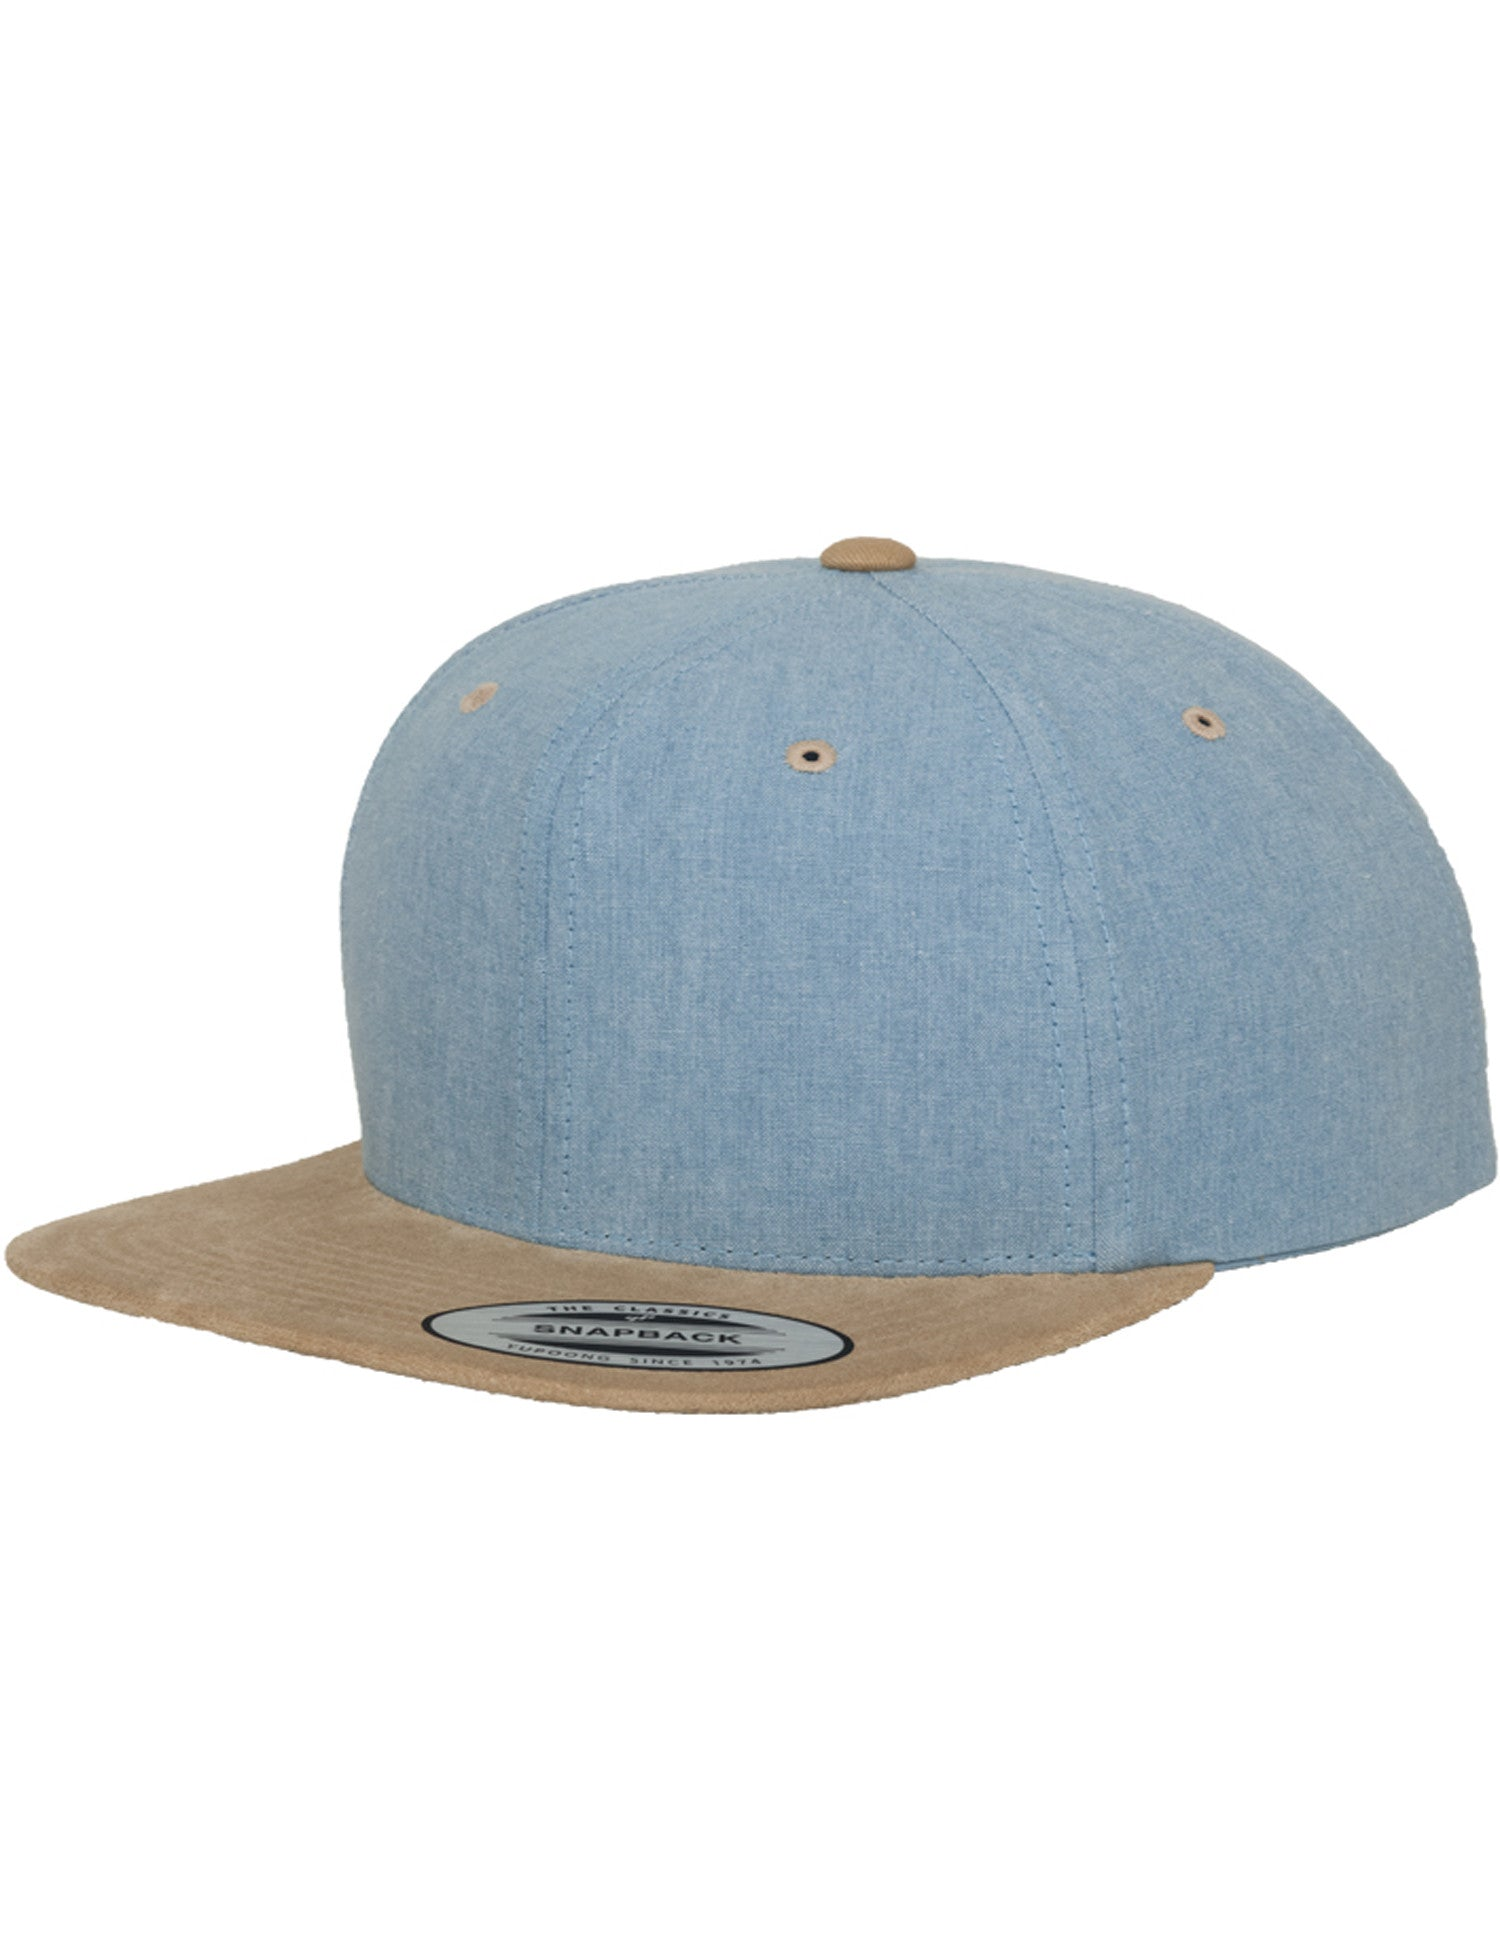 CHAMBRAY-SUEDE SNAPBACK CAPS Blue